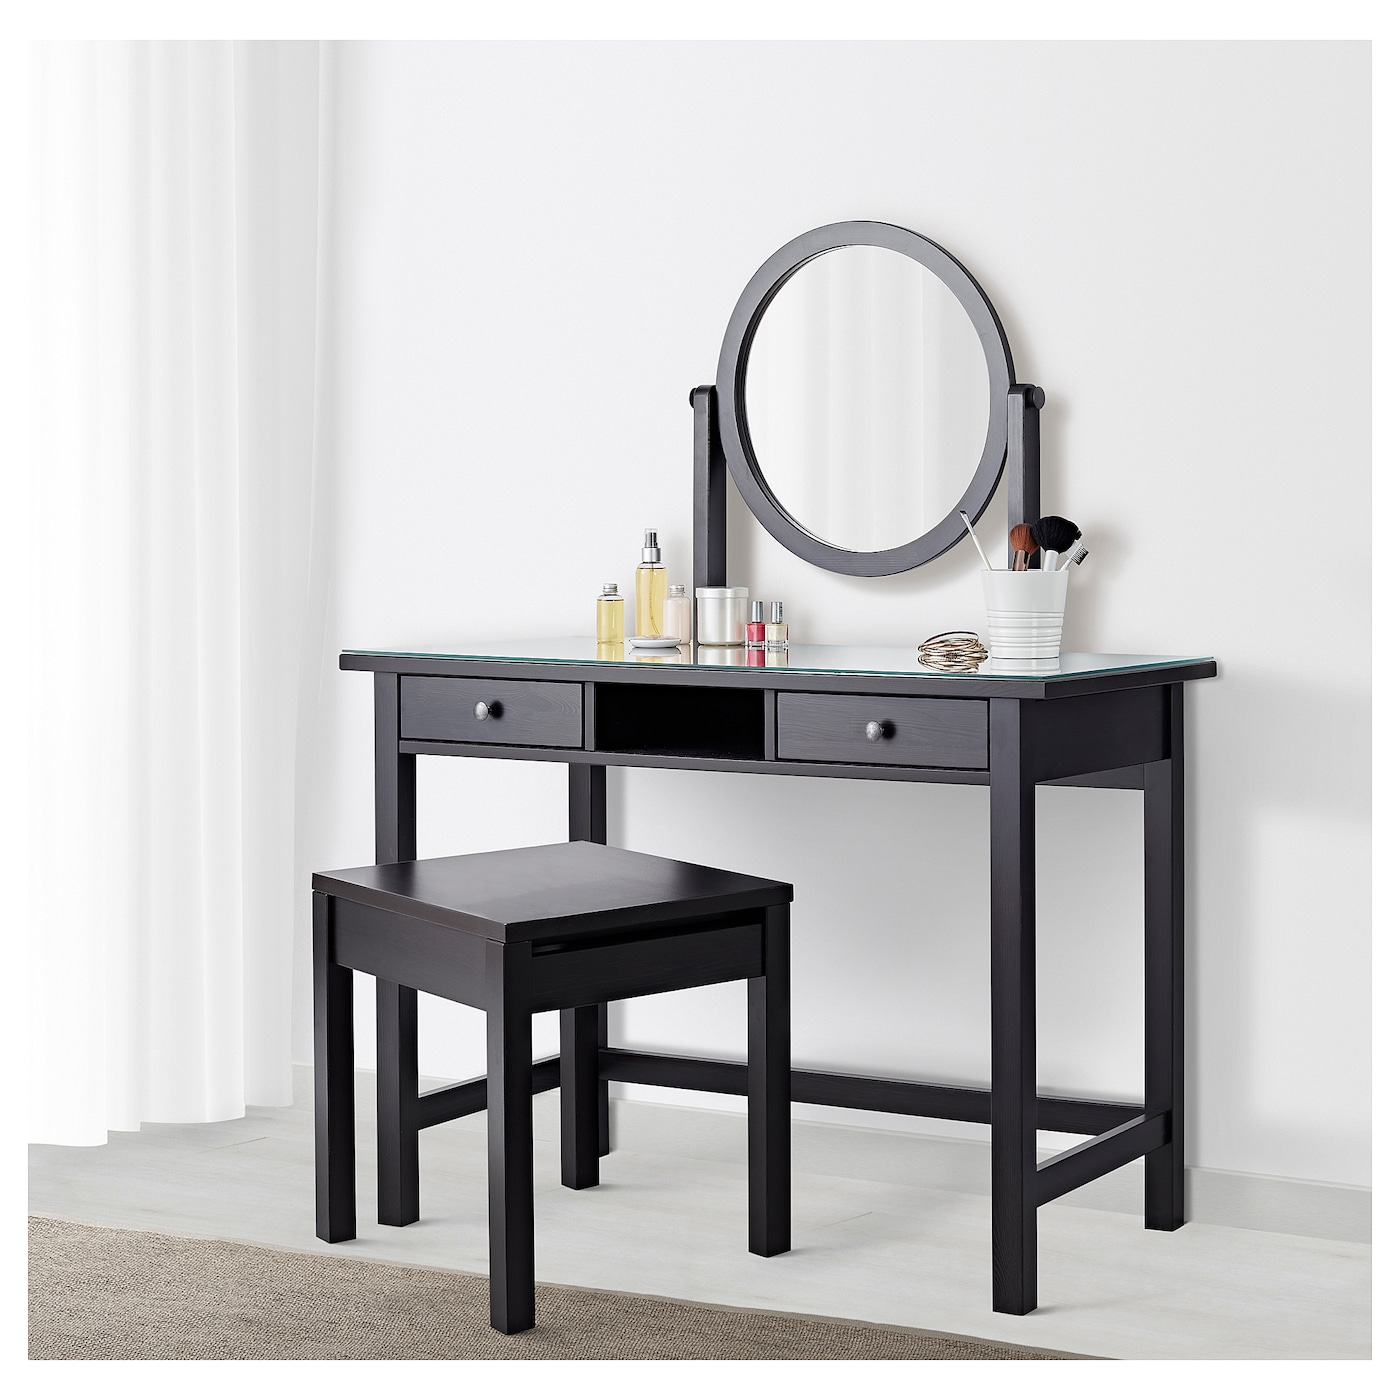 hemnes coiffeuse avec miroir brun noir 110x45 cm ikea. Black Bedroom Furniture Sets. Home Design Ideas